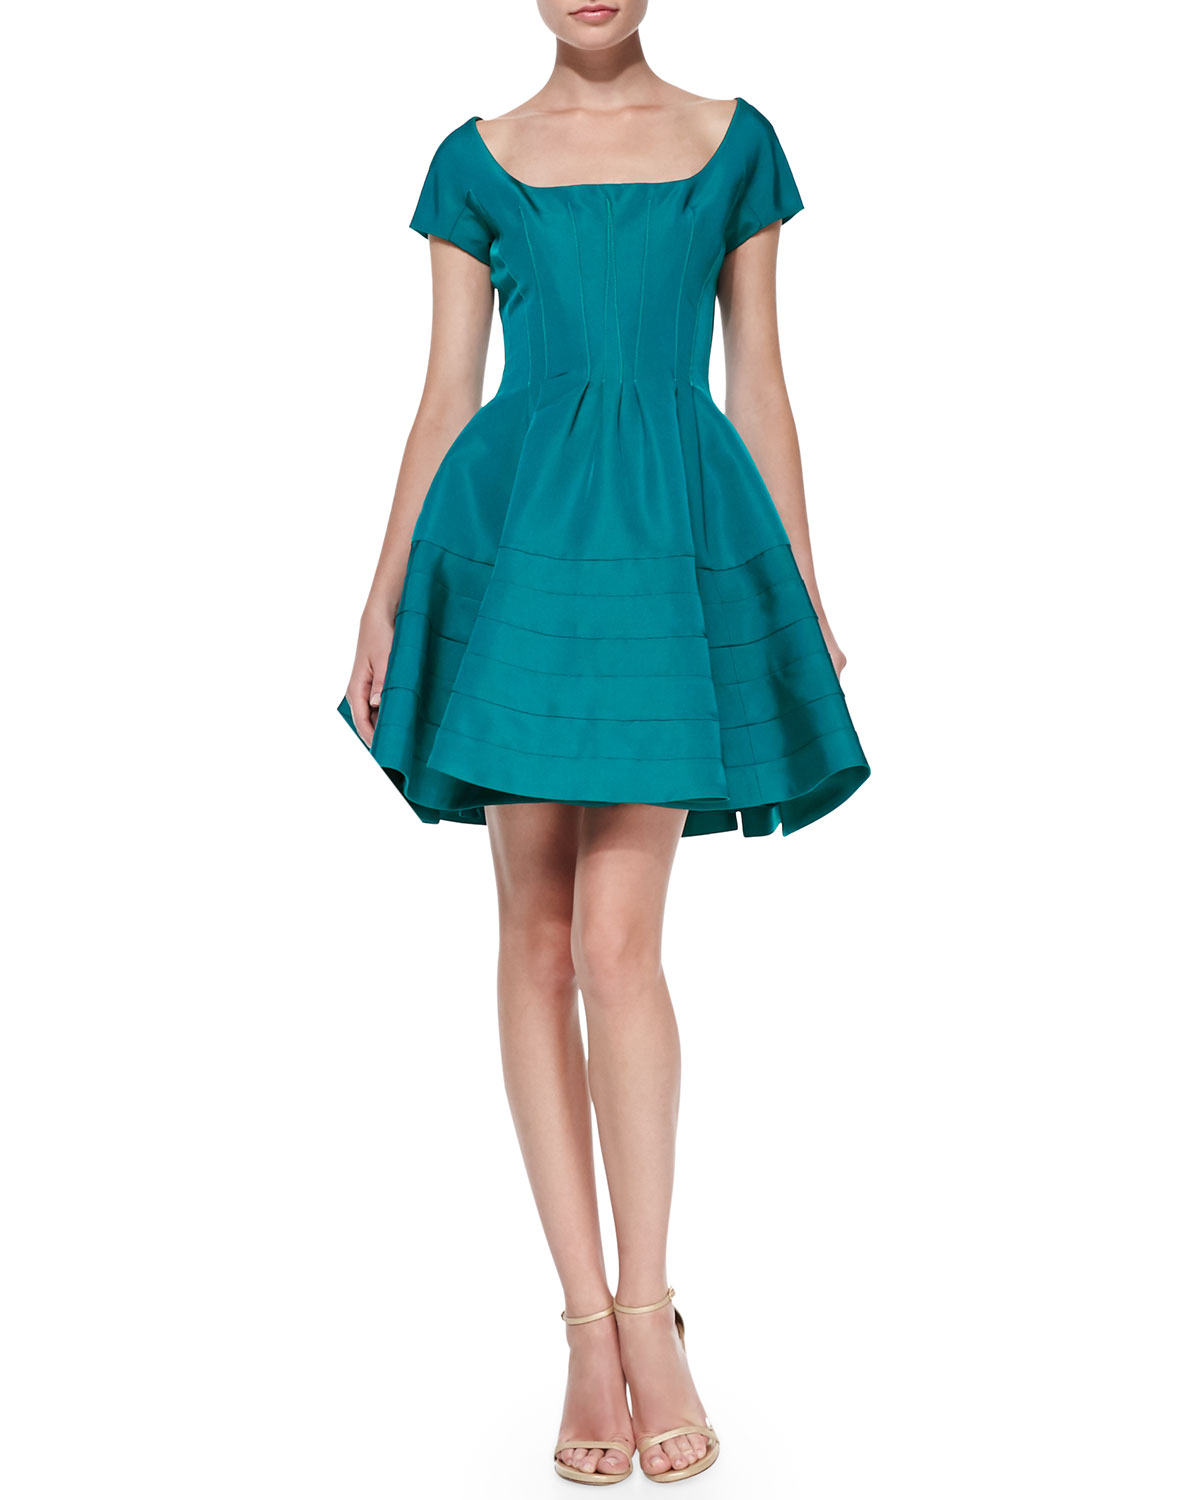 Lyst - Zac Posen Short-Sleeve Fit-And-Flare Dress in Blue